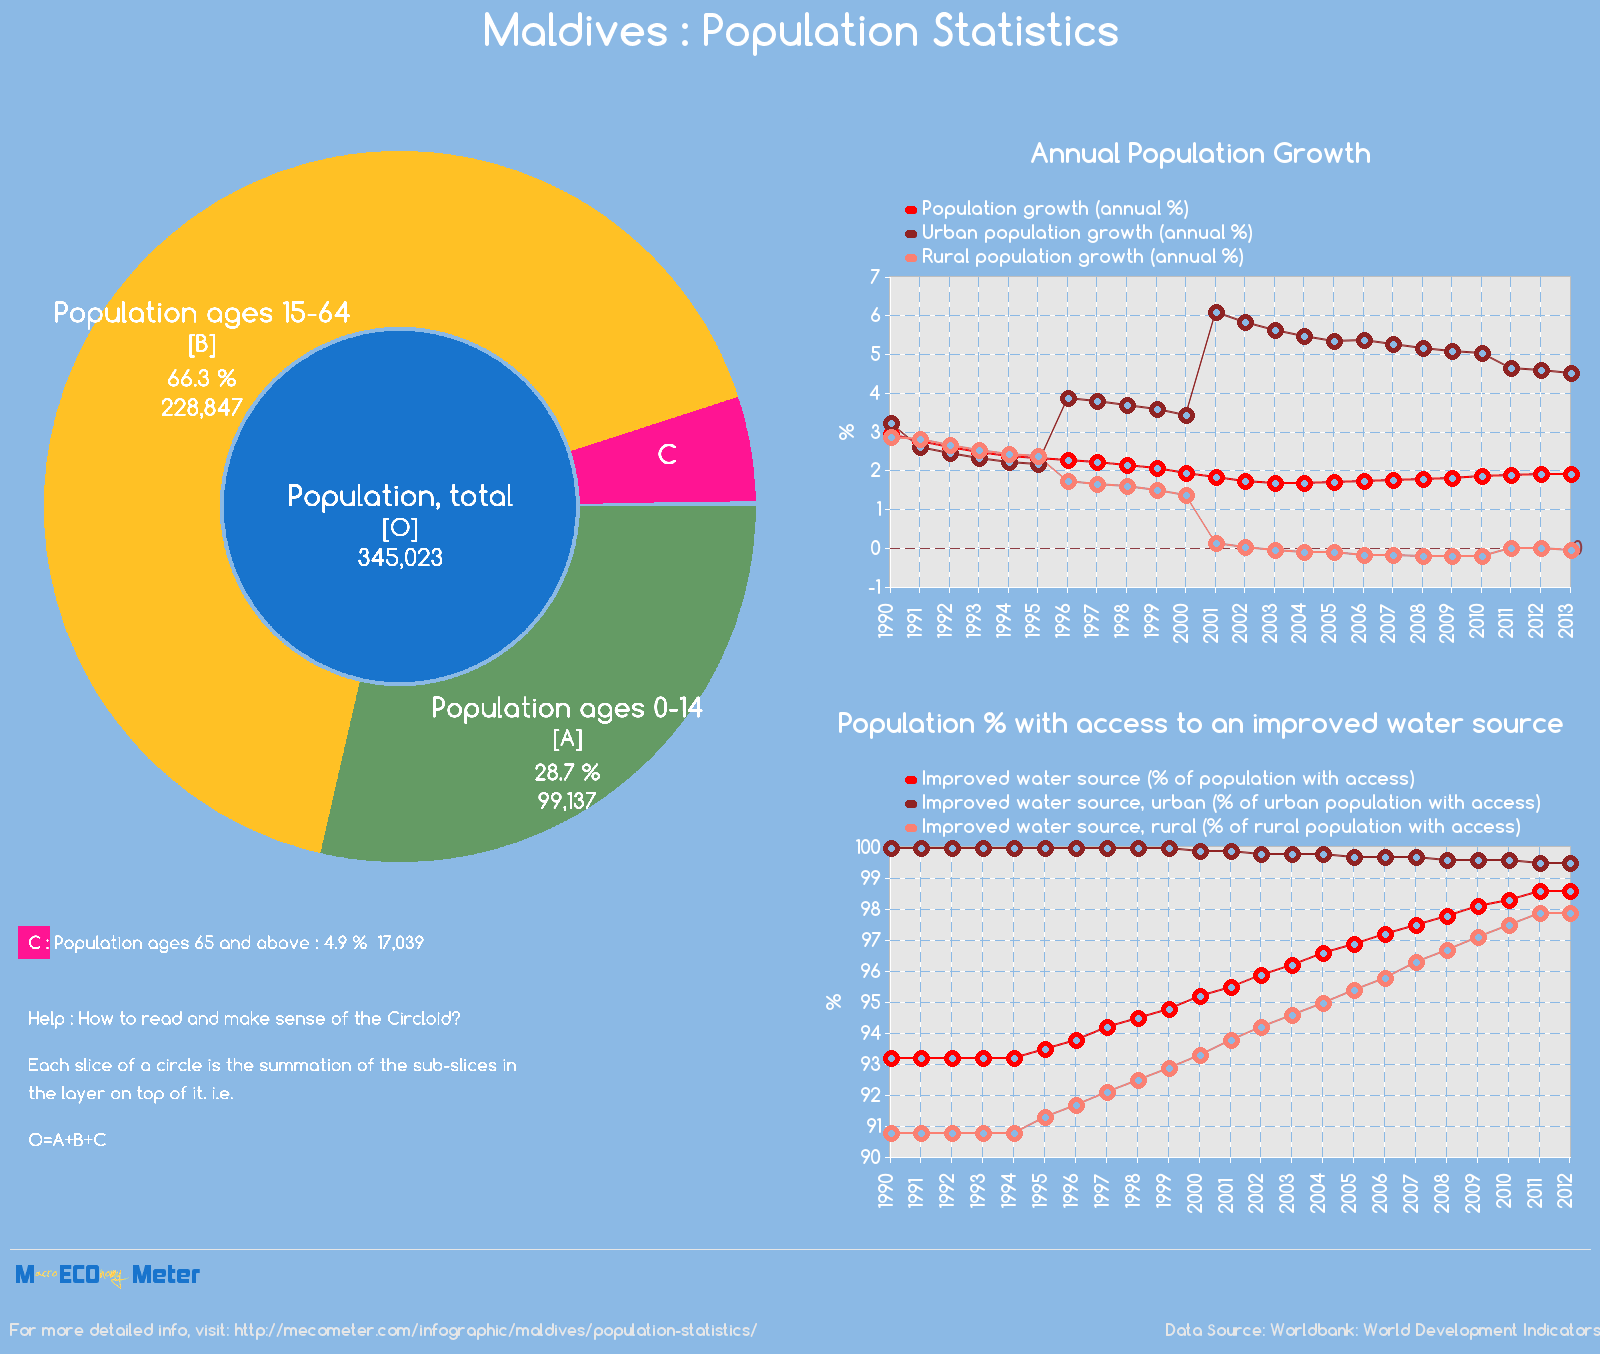 Maldives : Population Statistics